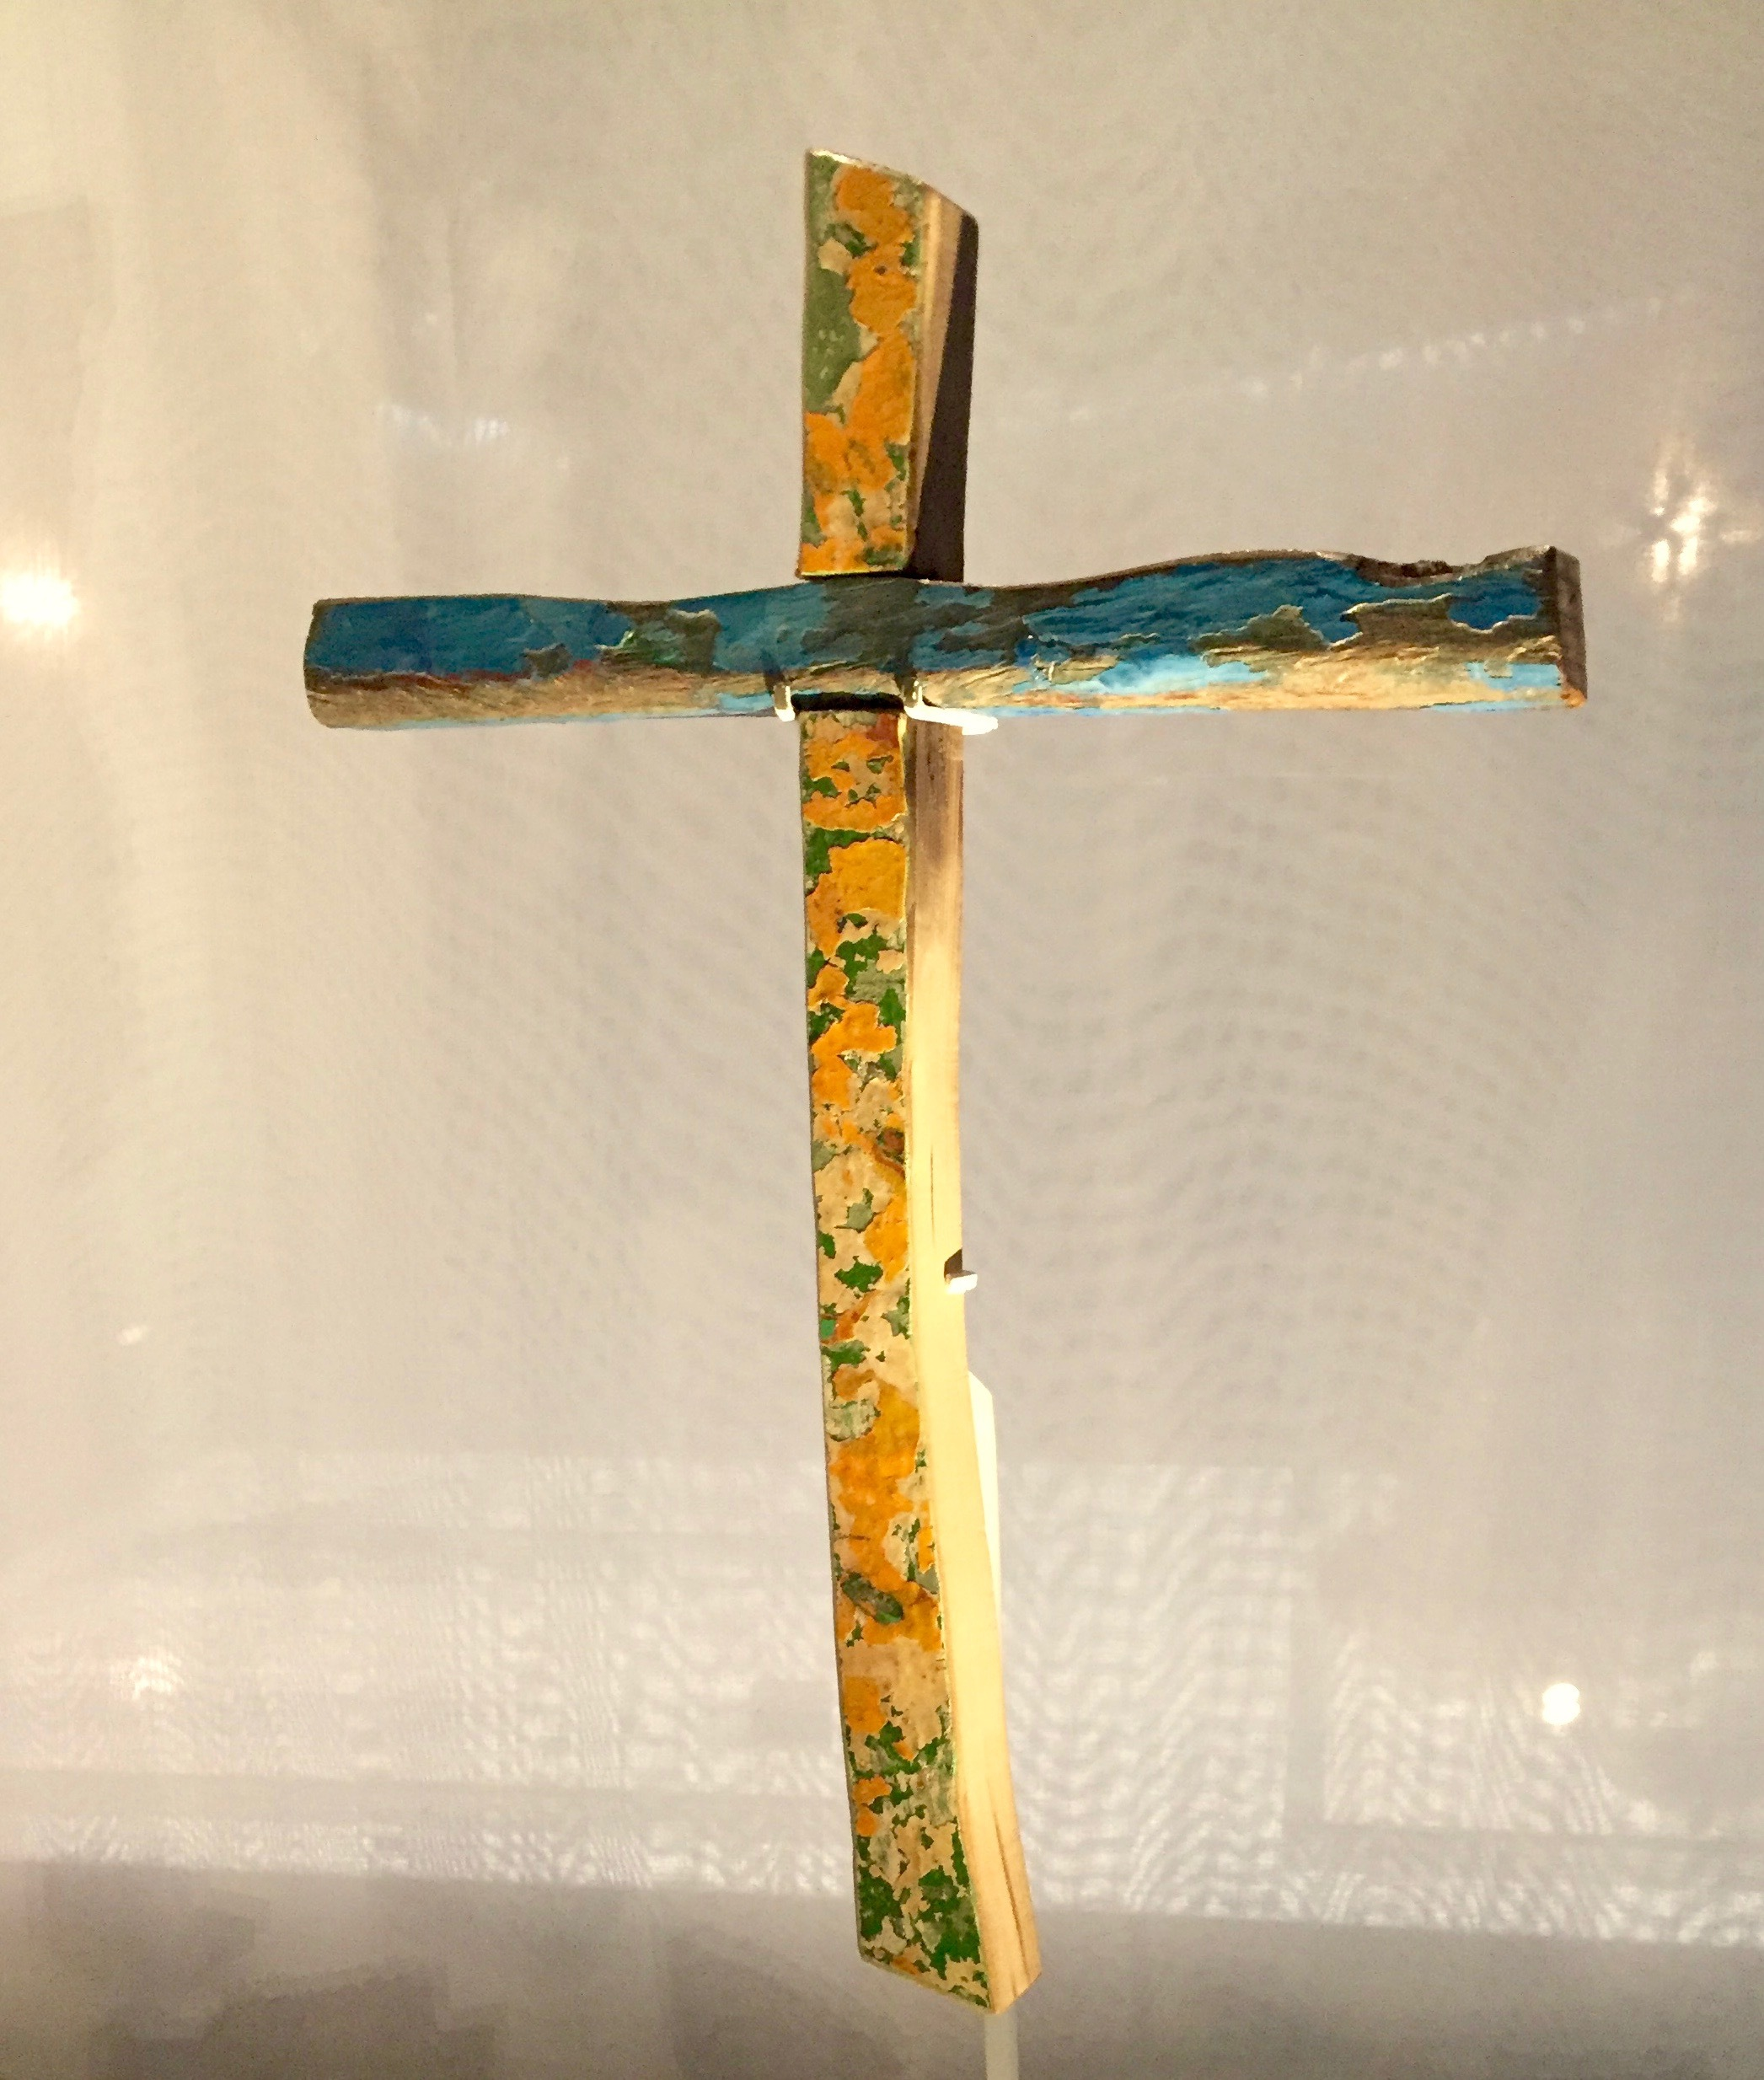 The Lampedusa Cross